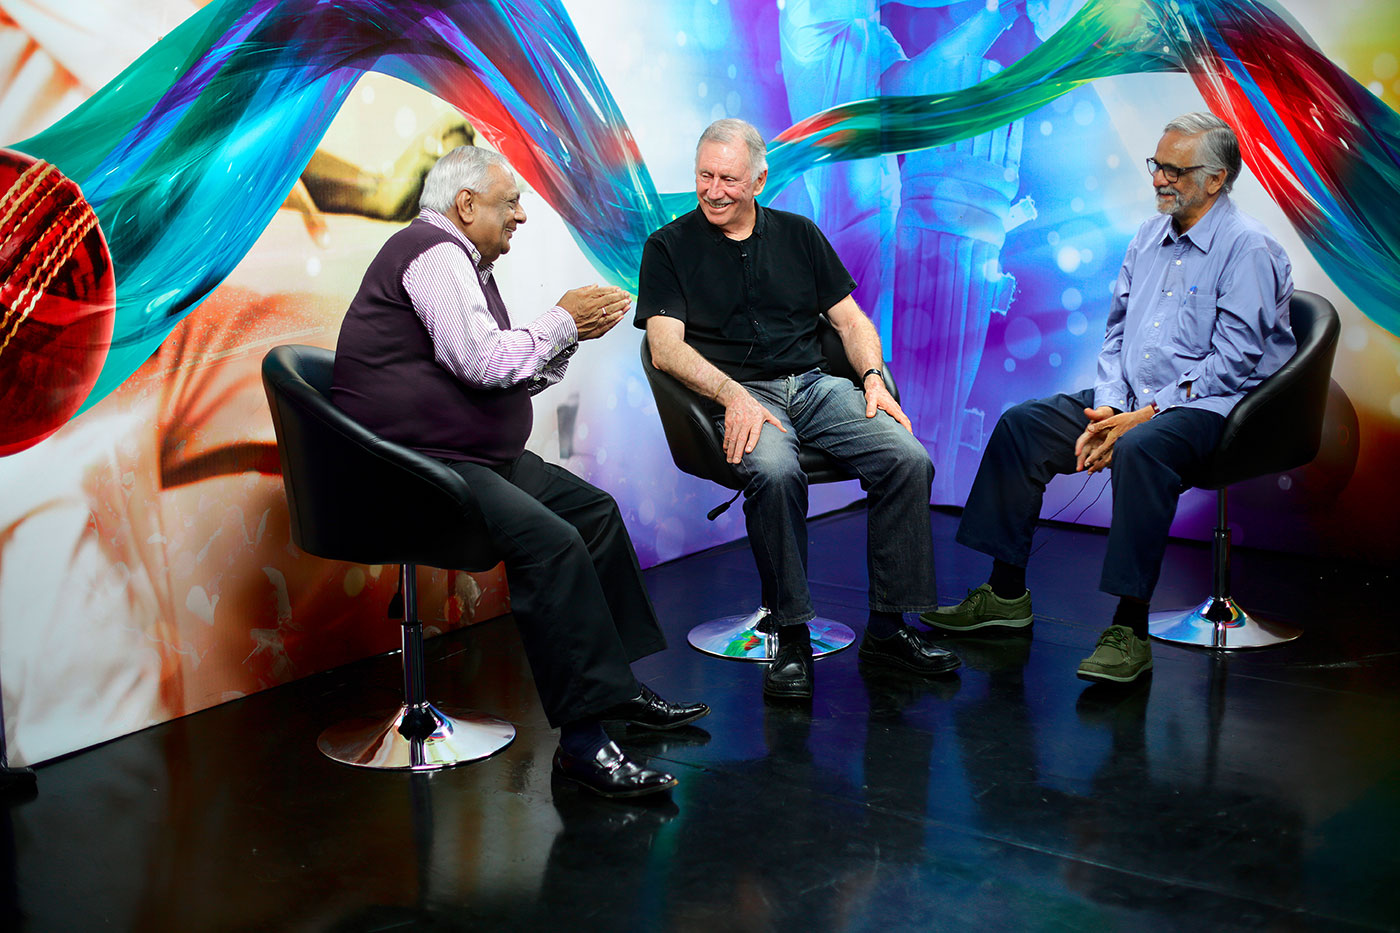 Erapalli Prasanna, Ian Chappell and V Ramnarayan discuss